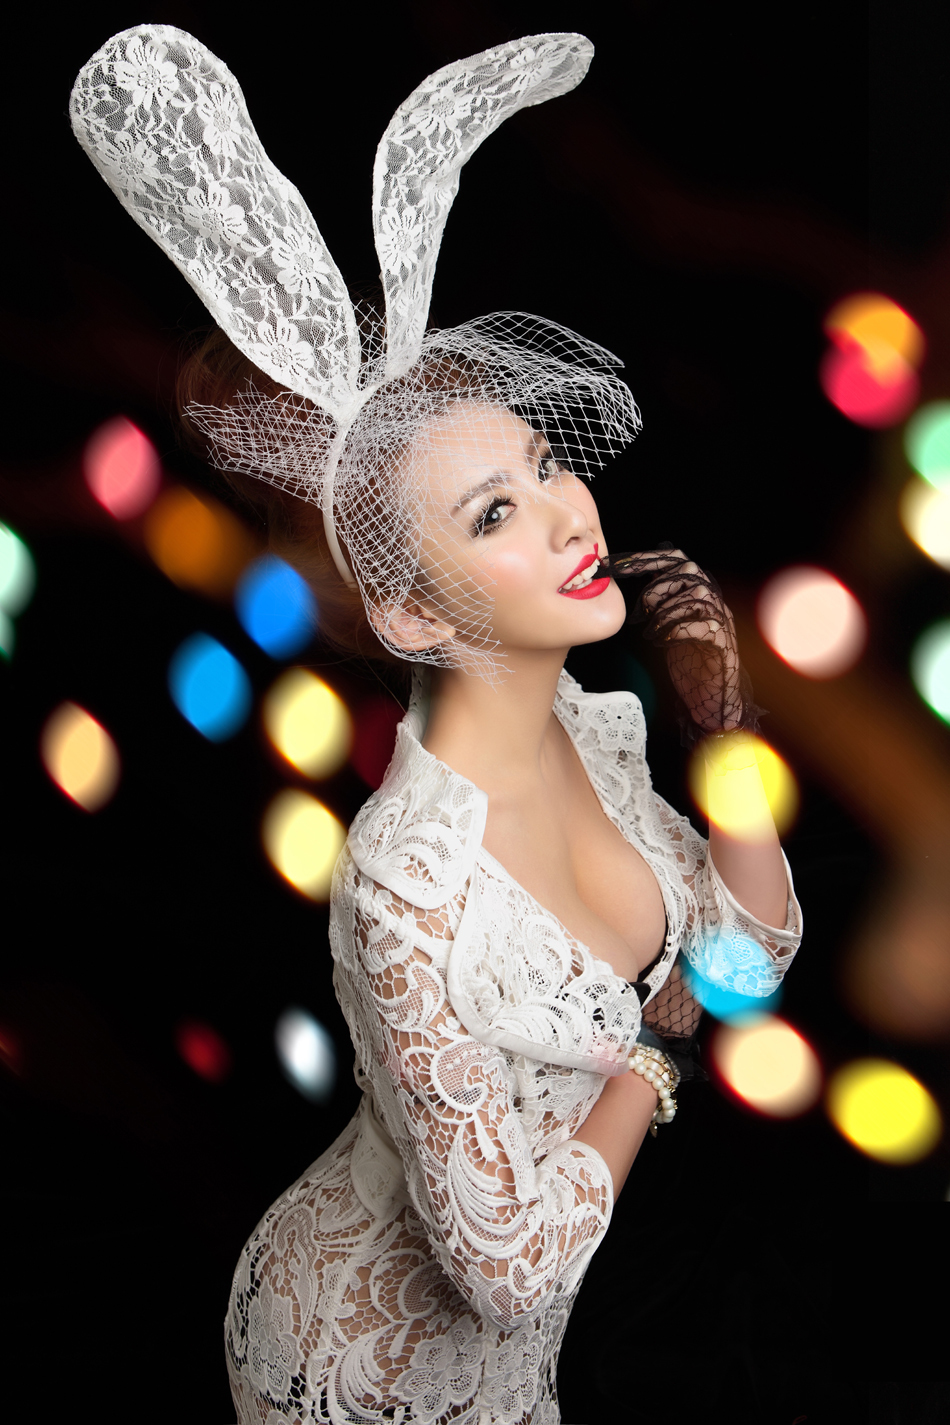 Free-shipping-2014-NEW-woman-s-Party-mask-rabbit-ears-veil-Sexy-bunny- Halloween-lace-mask.jpg